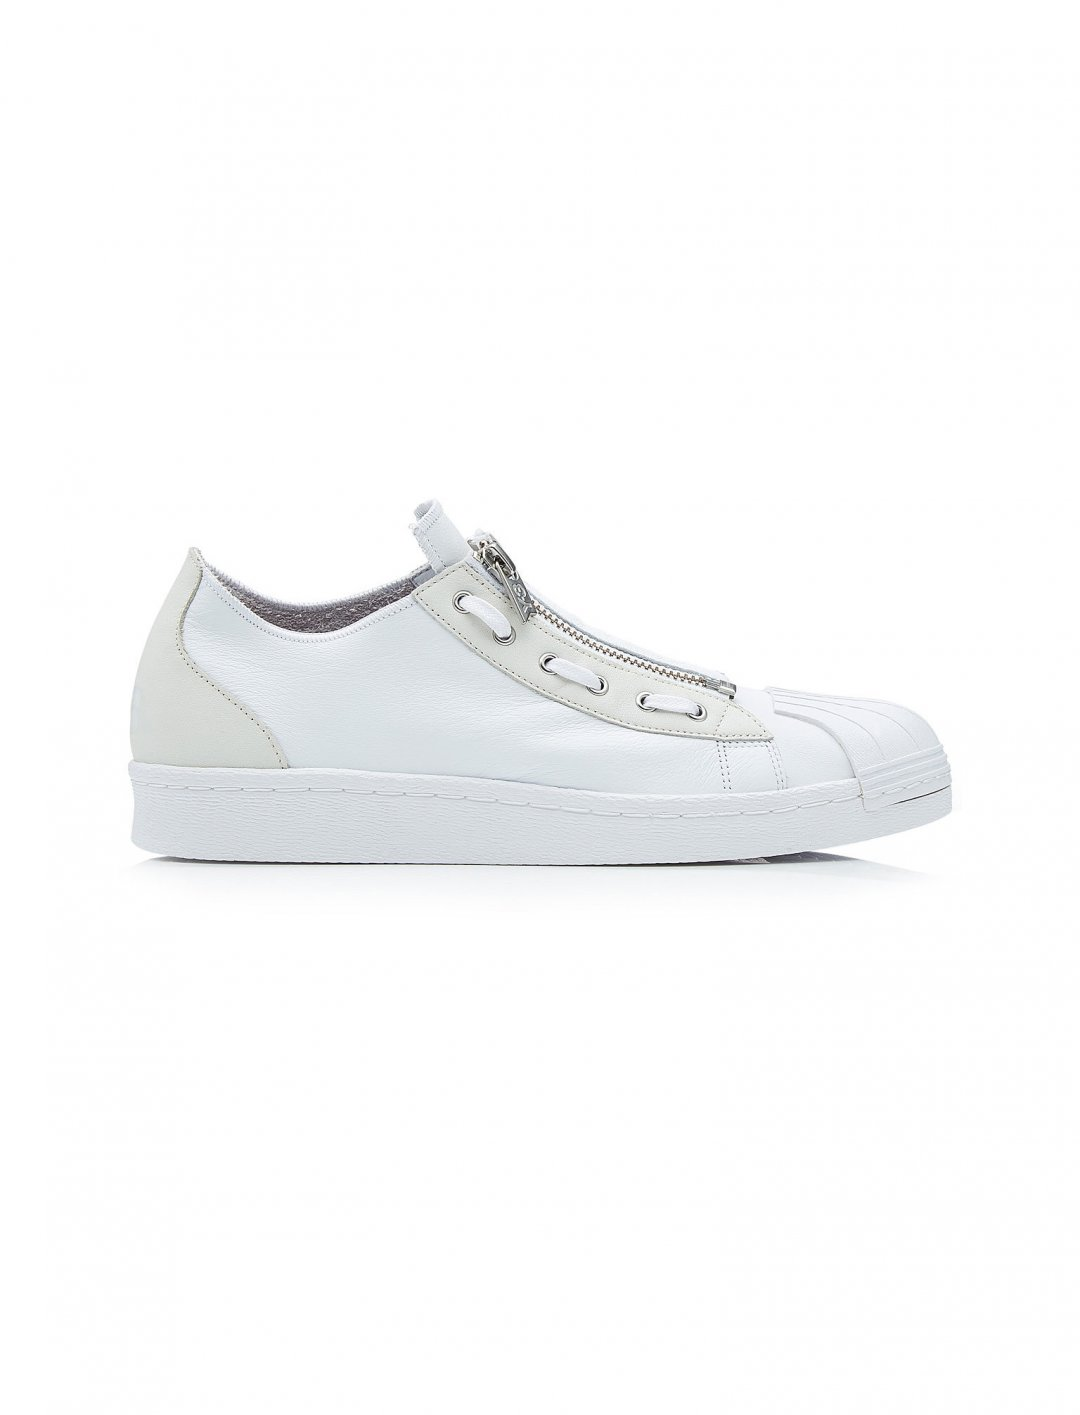 "Y-3 Leather Sneakers {""id"":12,""product_section_id"":1,""name"":""Shoes"",""order"":12} Y-3"